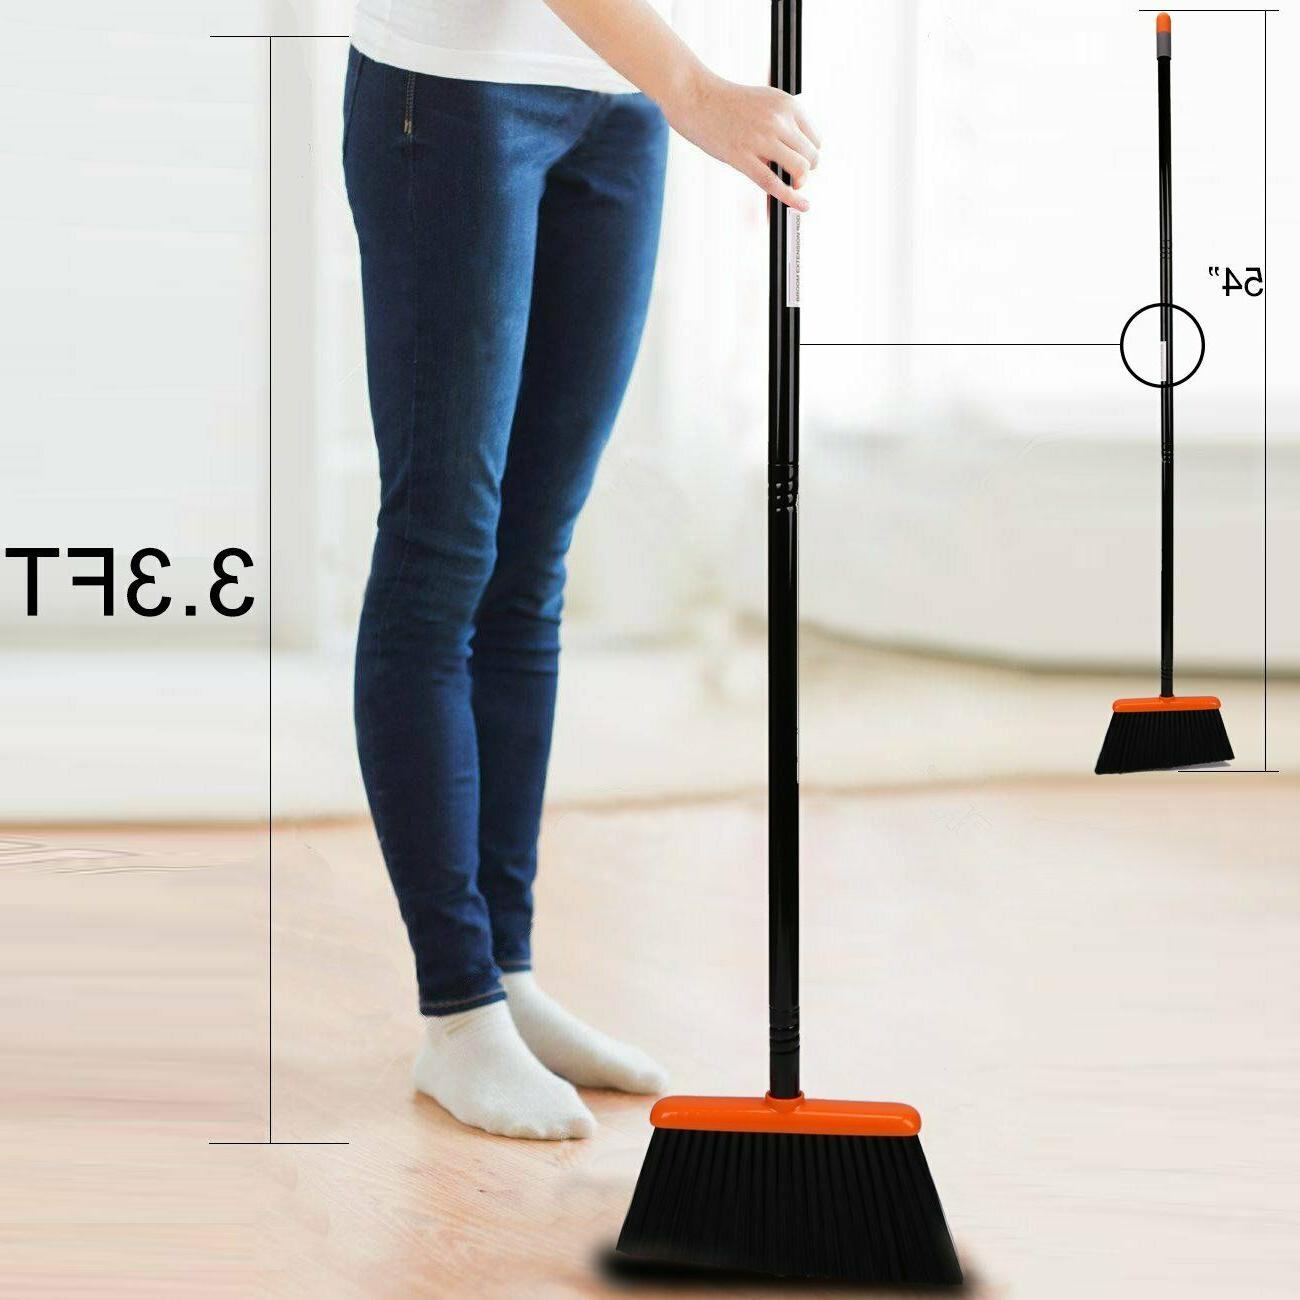 Dust Dustpan Cleans with Home Kitchen